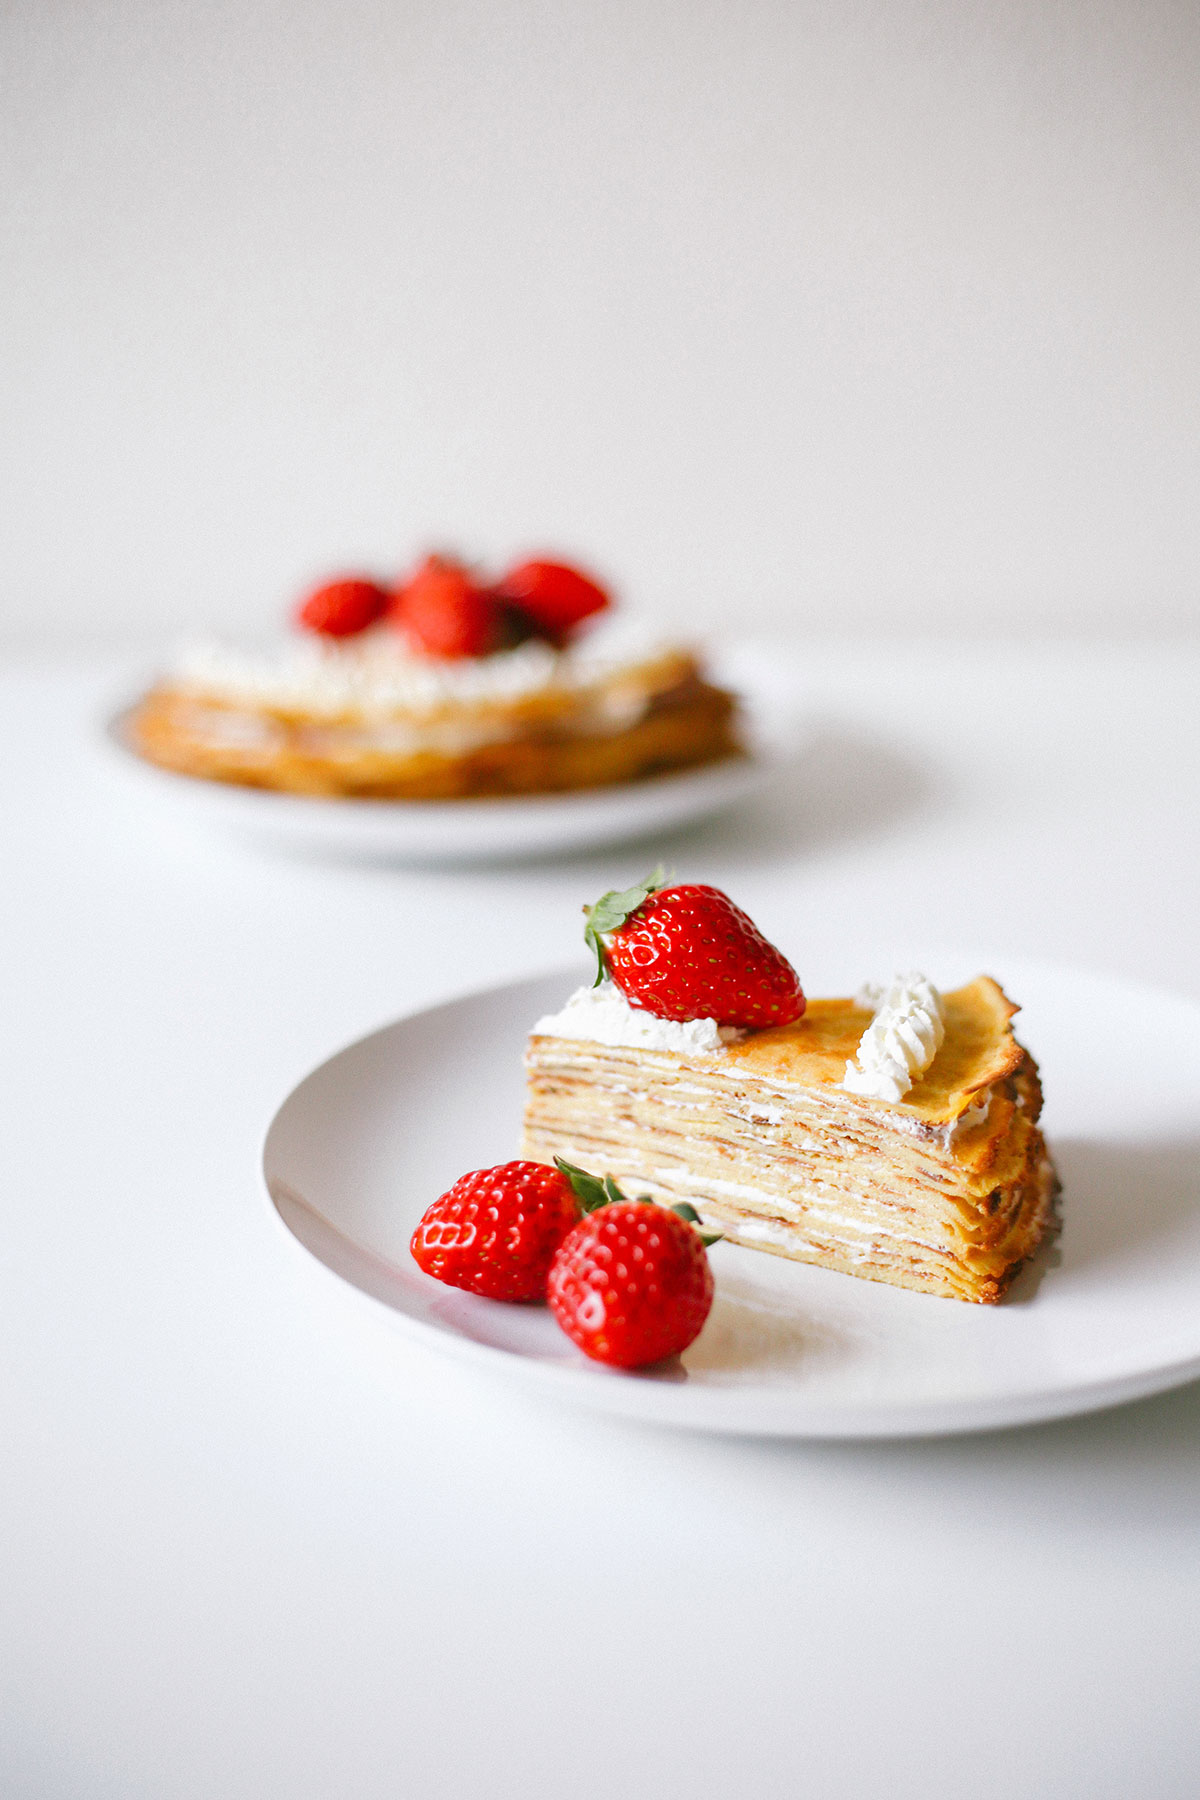 Keto crepe cake for low carb. Easy mille crepe recipe served with strawberries.